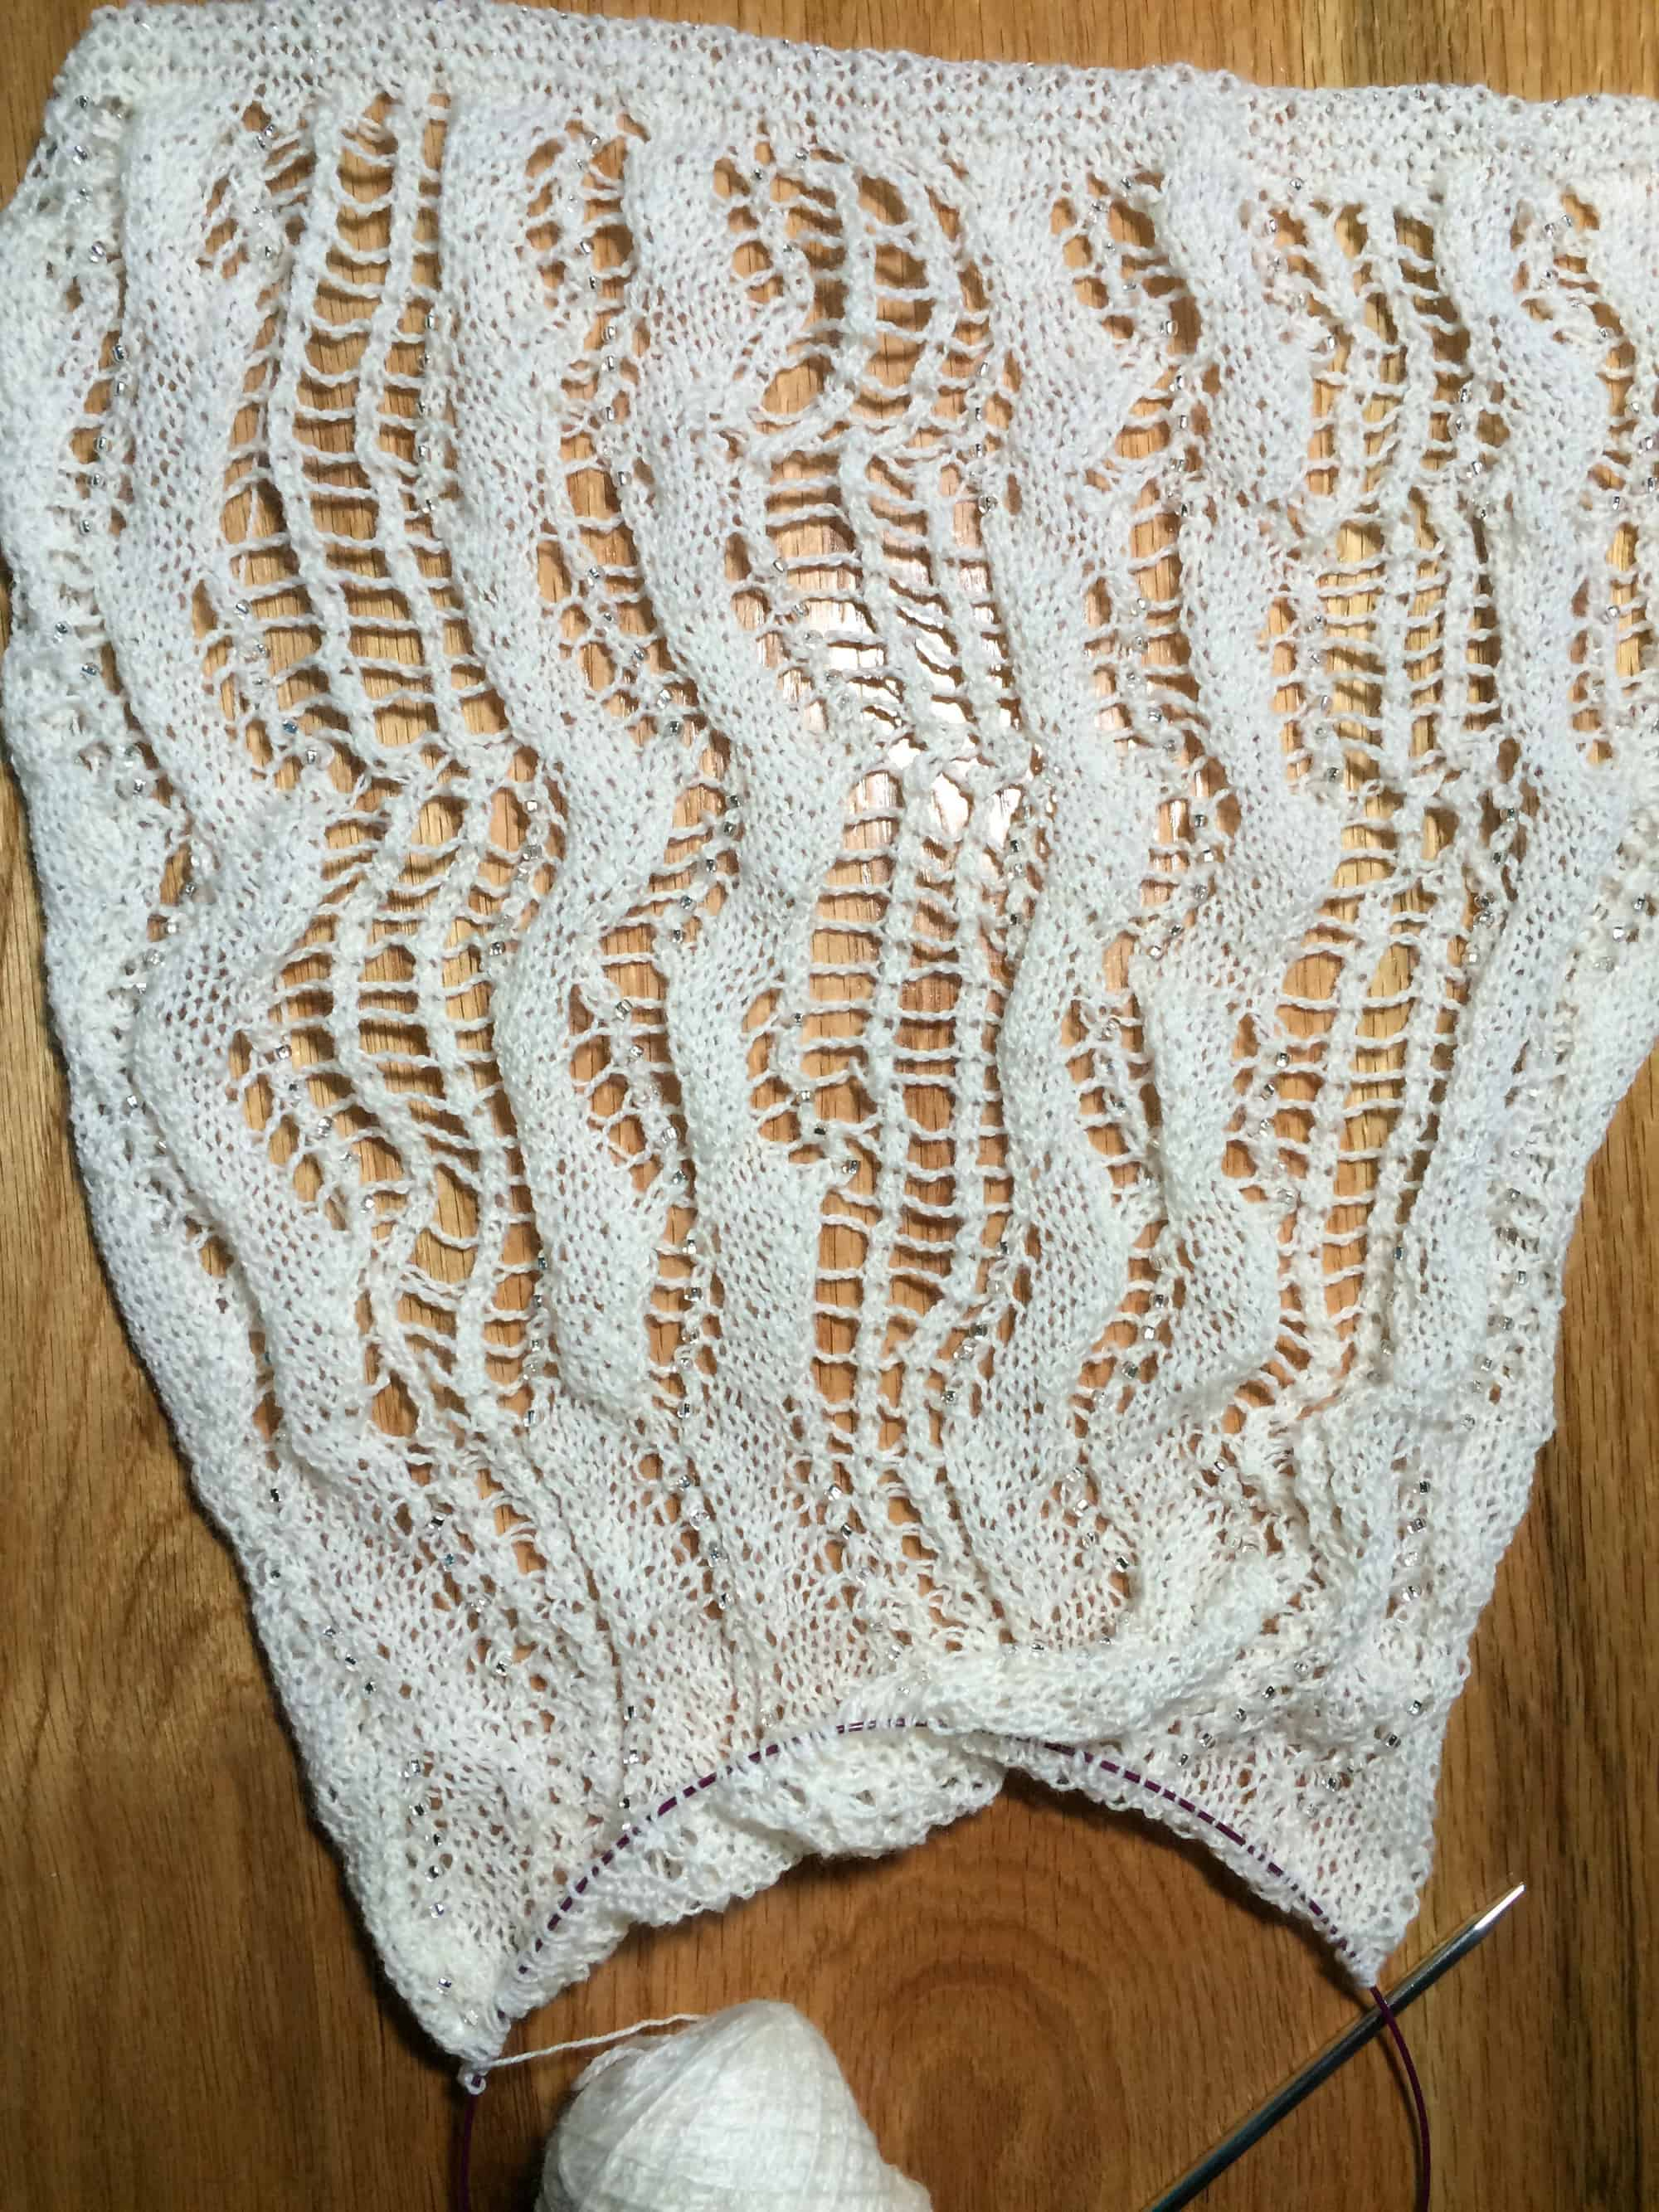 WIP Wednesday: March 11, 2015